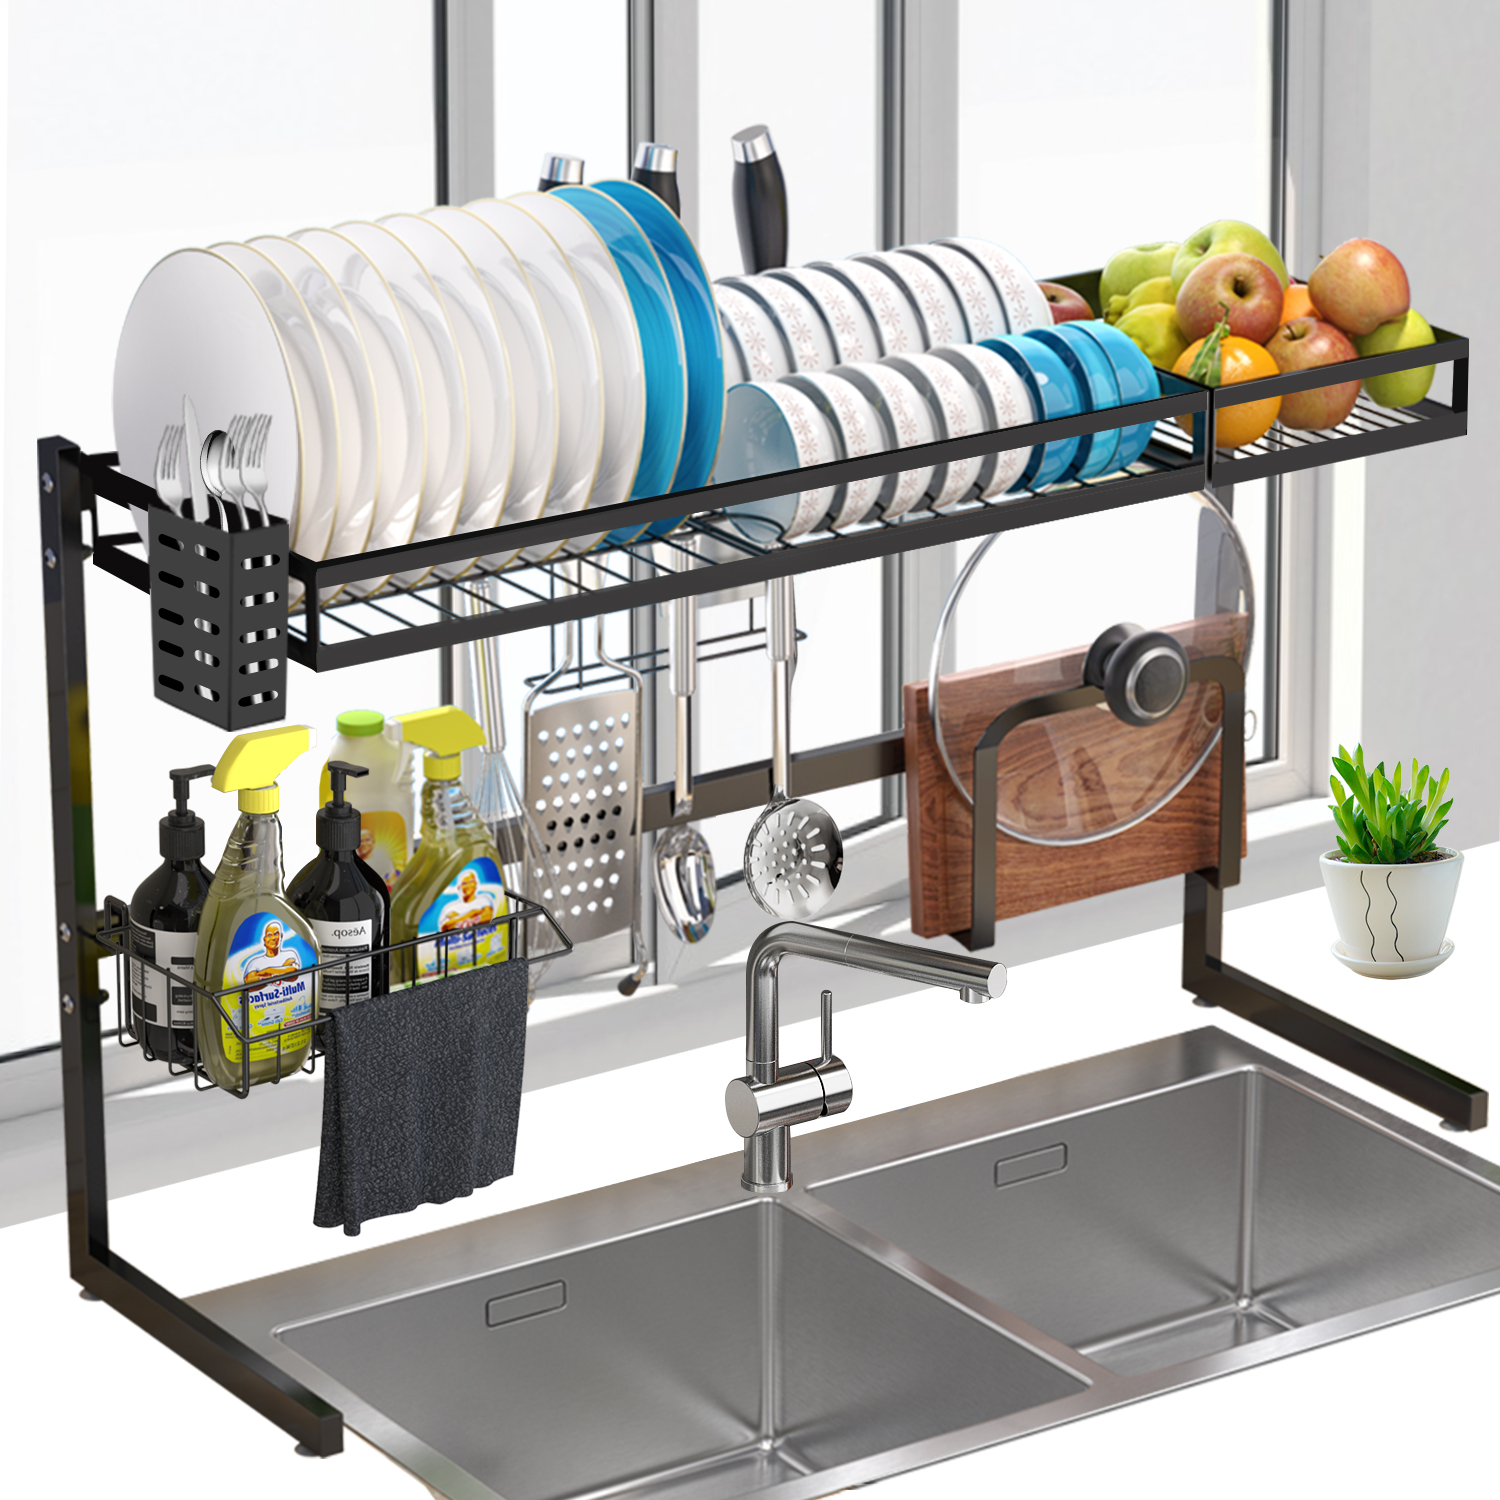 Over Sink Dish Rack G Ting 2tier Dish Drying Rack 34 Large Dish Drainer Shelf With Utensil Holder Over The Sink Kitchen Stainless Steel Storage Rack Space Saver Display Stand G Ting